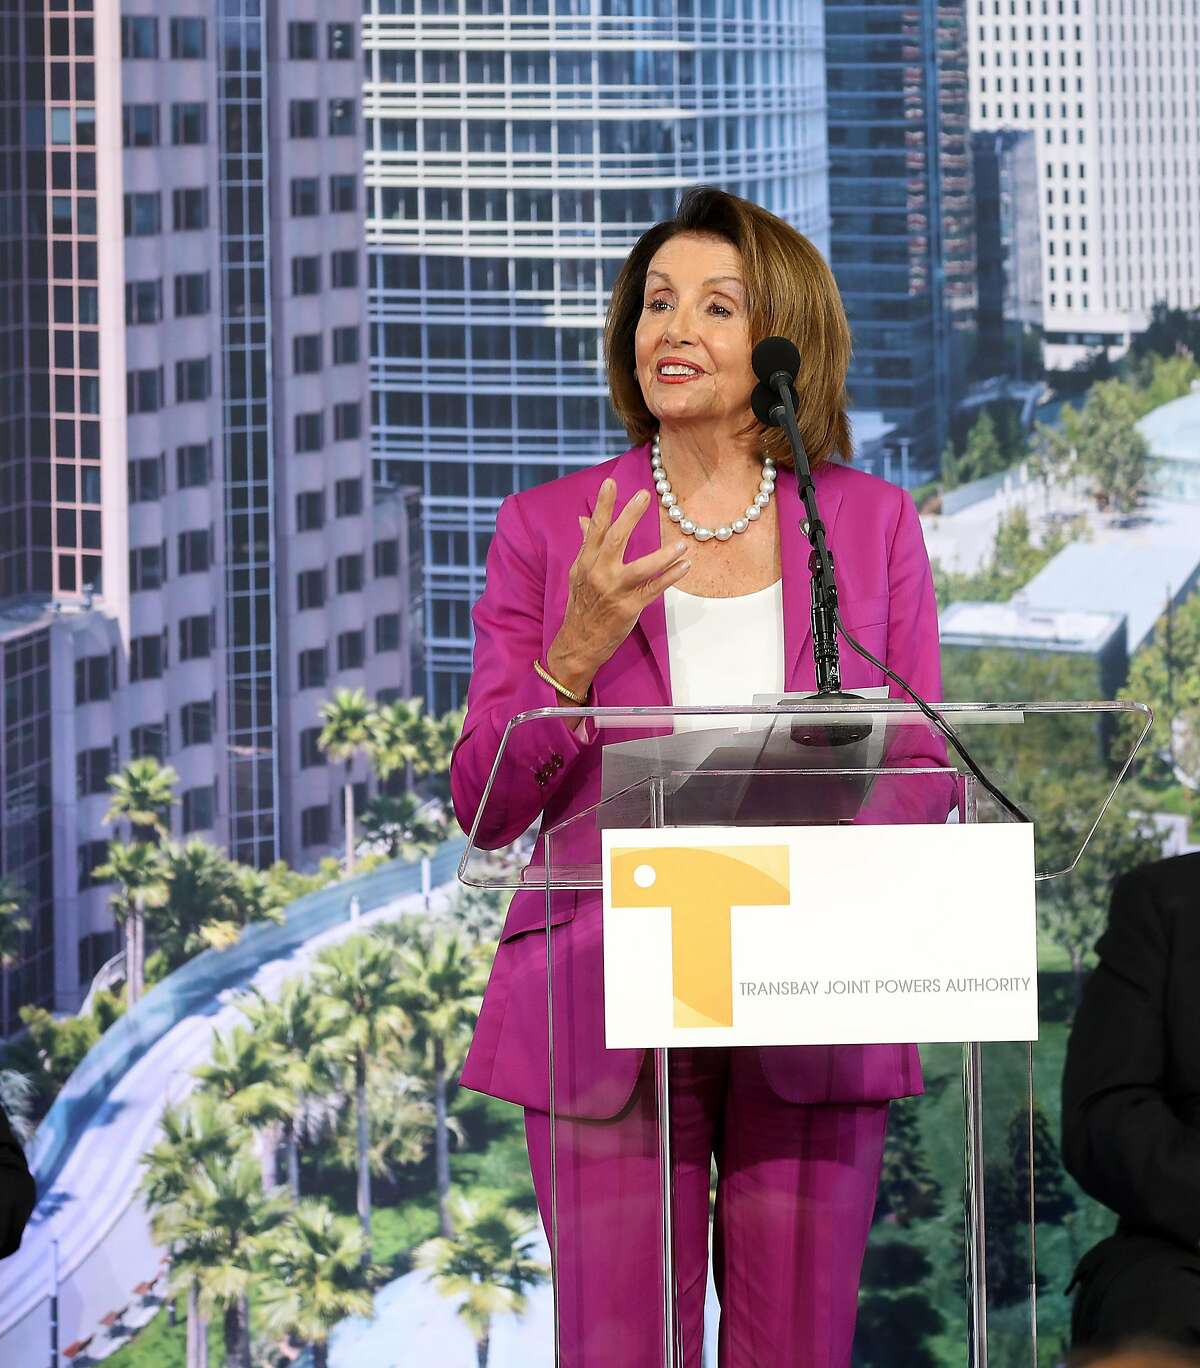 House democratic leader Nancy Pelosi speaks at the ribbon cutting ceremony at the Salesforce Transit Center on Friday, Aug. 10, 2018 in San Francisco, Calif.